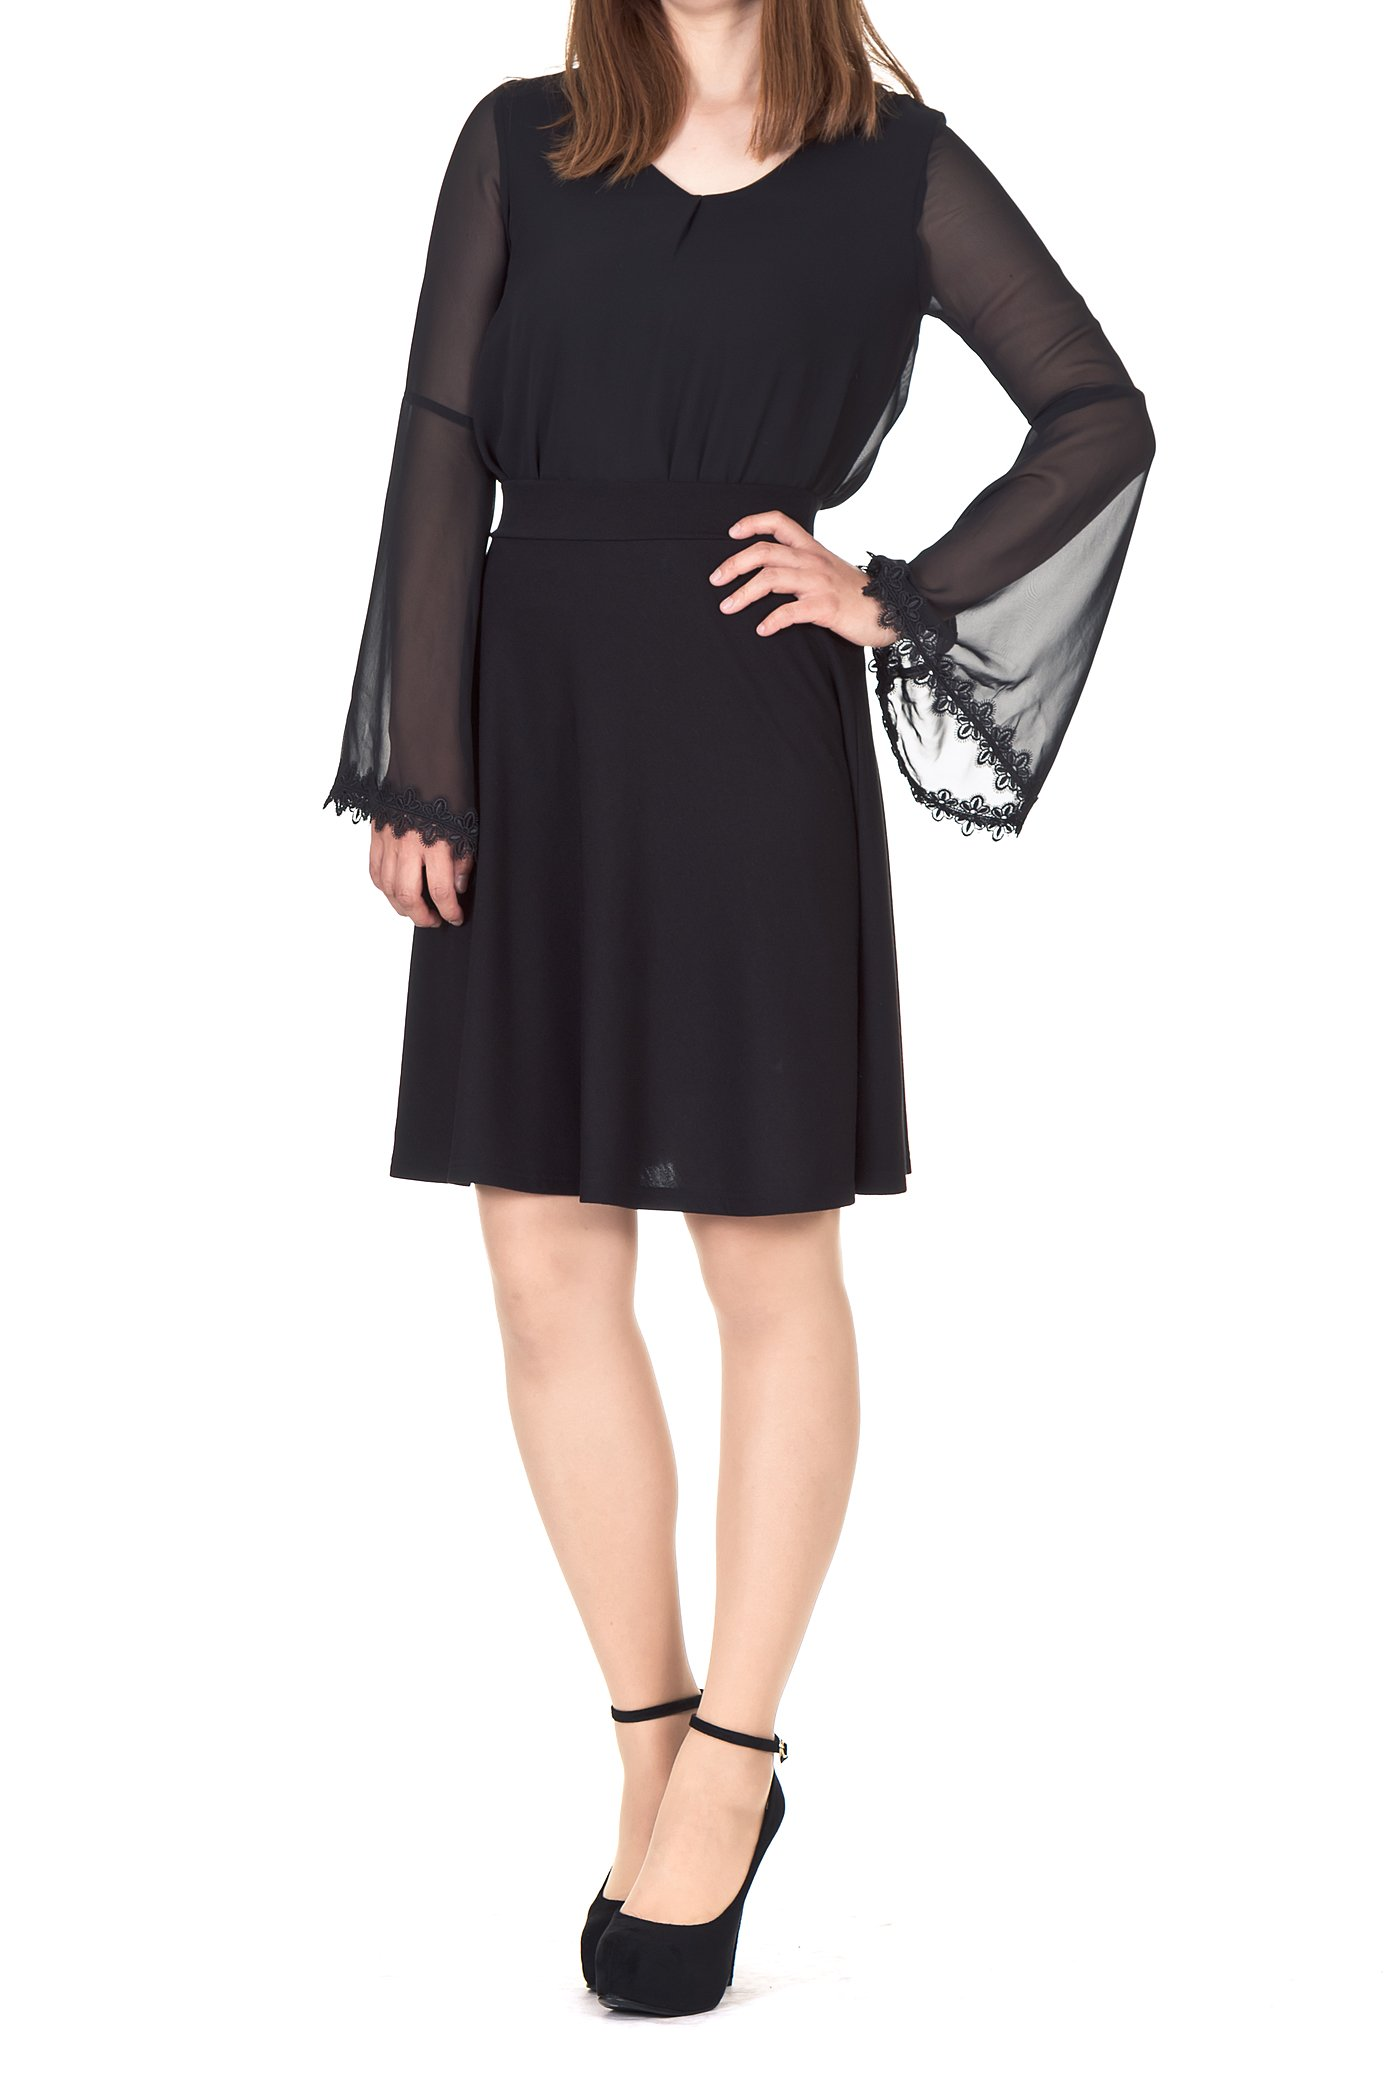 Simple Stretch A-line Flared Knee Length Skirt (XL, Knee Black) by Dani's Choice (Image #1)